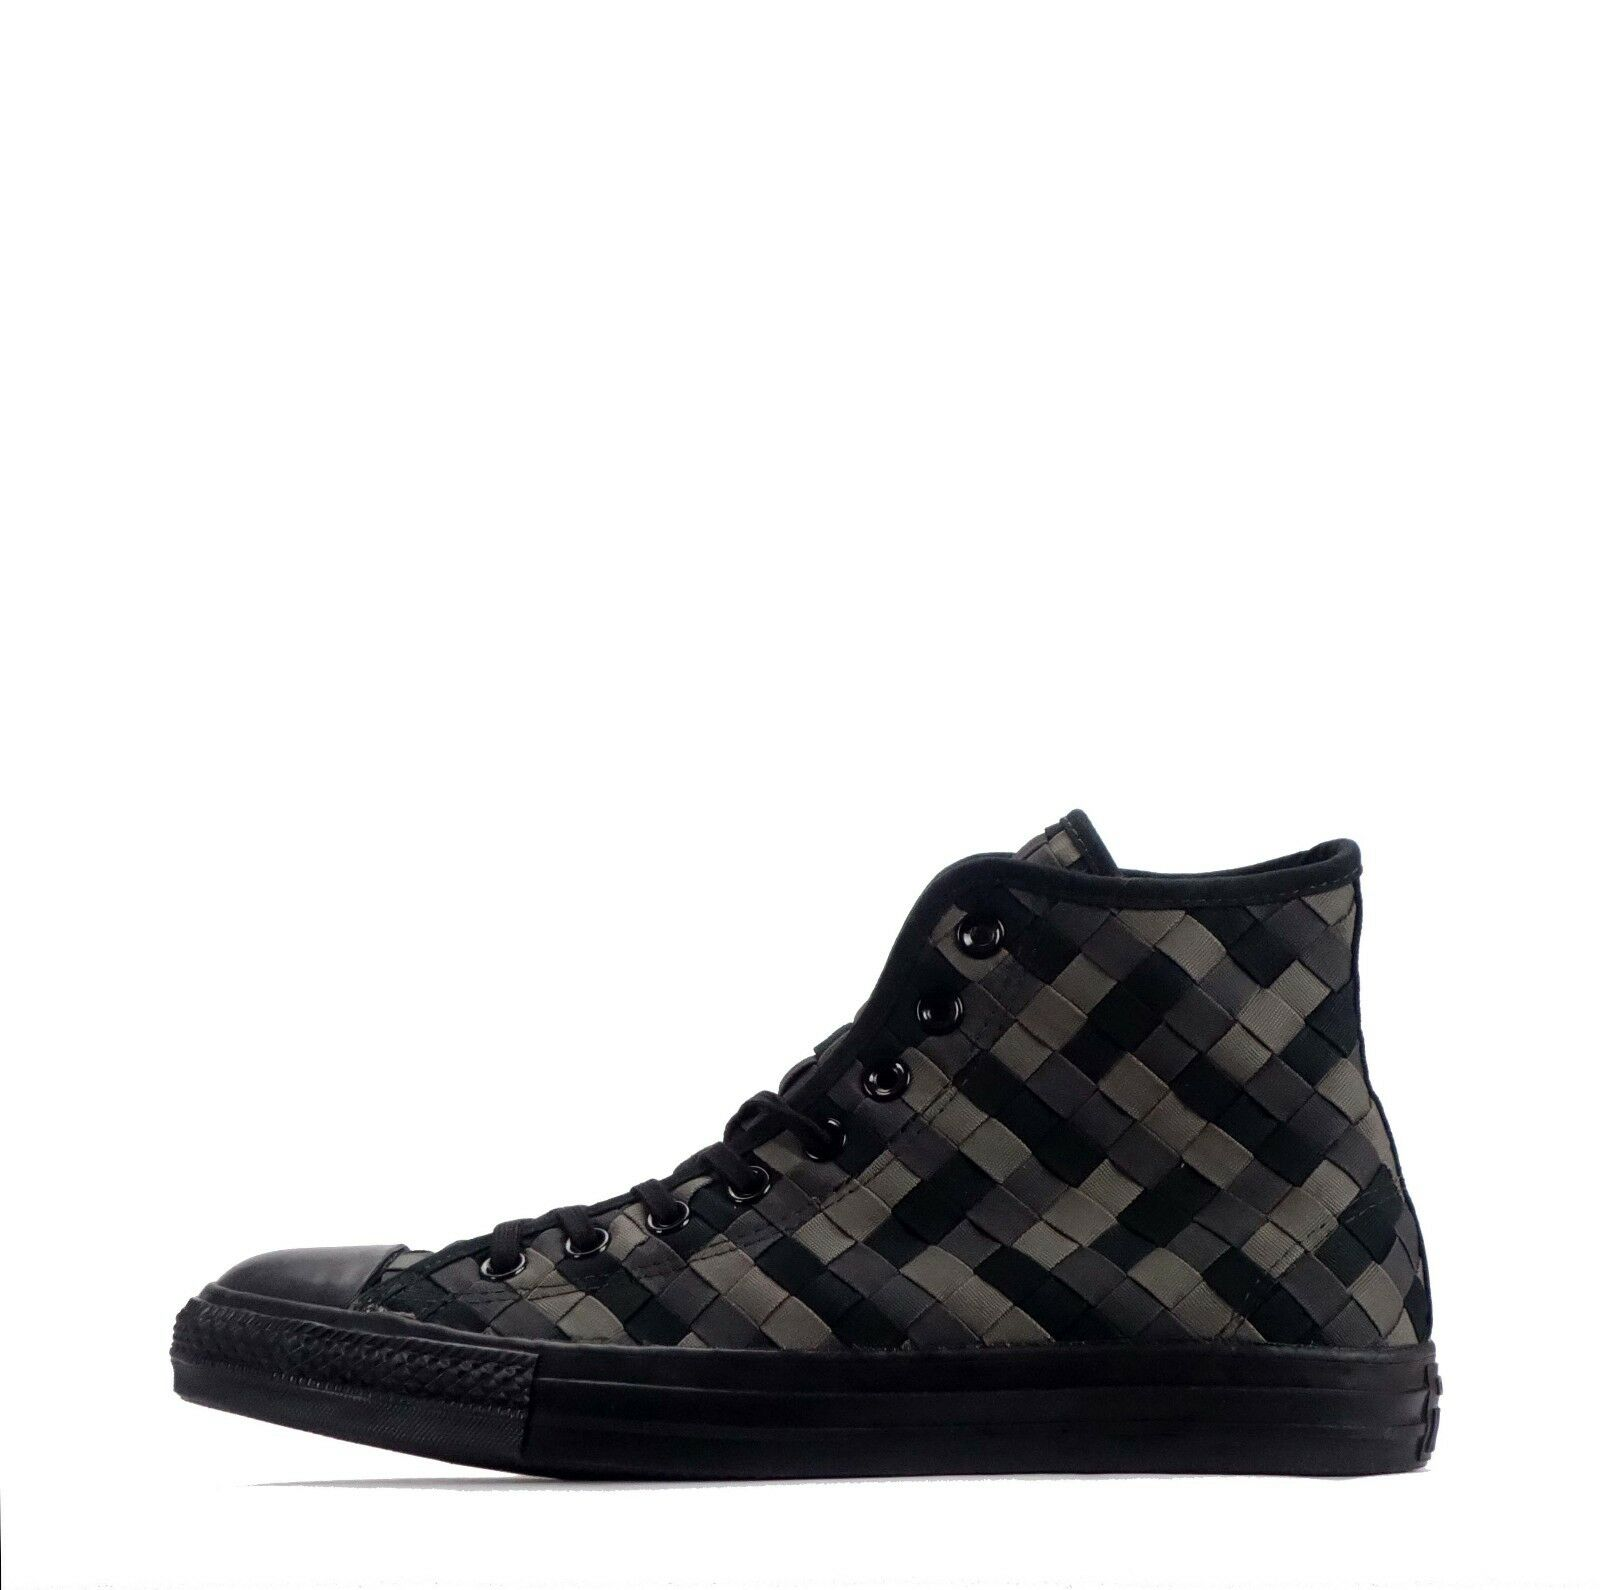 Converse Chuck Taylor All Star Hi Woven Mens Trainers Black/Charcoal